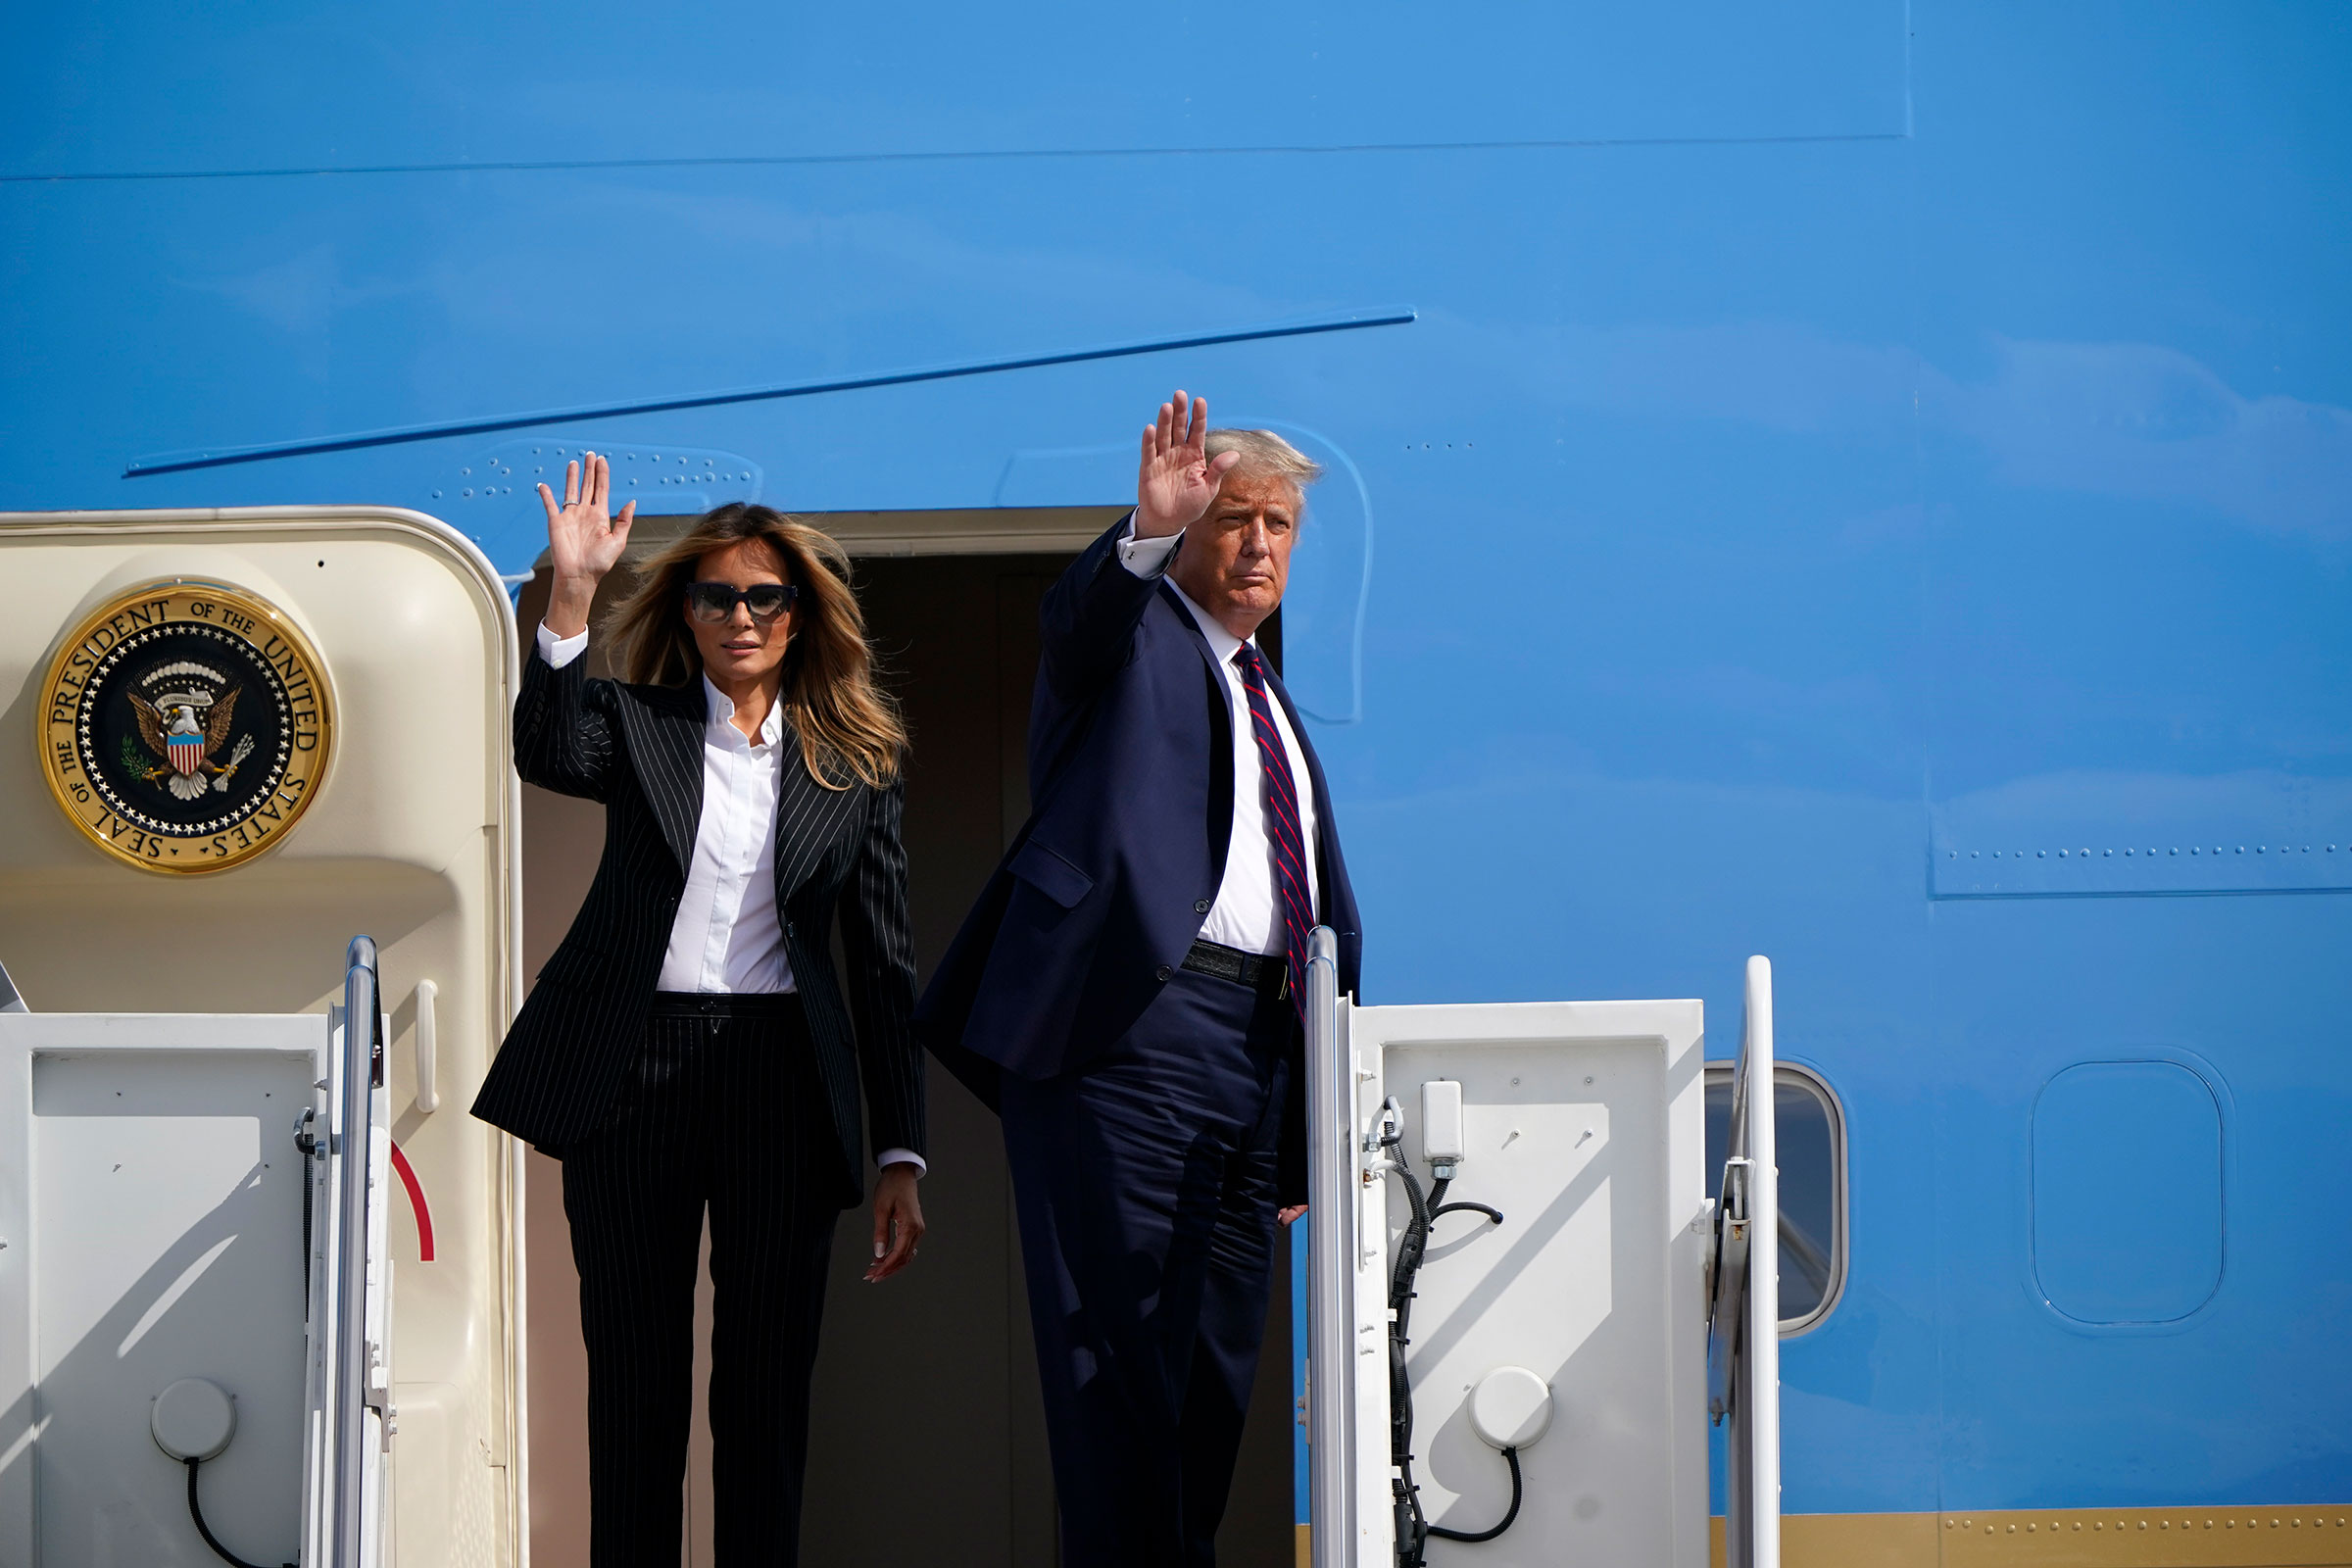 President Donald Trump and first lady Melania Trump wave before boarding Air Force One at Andrews Air Force Base, Md to travel to the first presidential debate on Sept. 29, 2020.